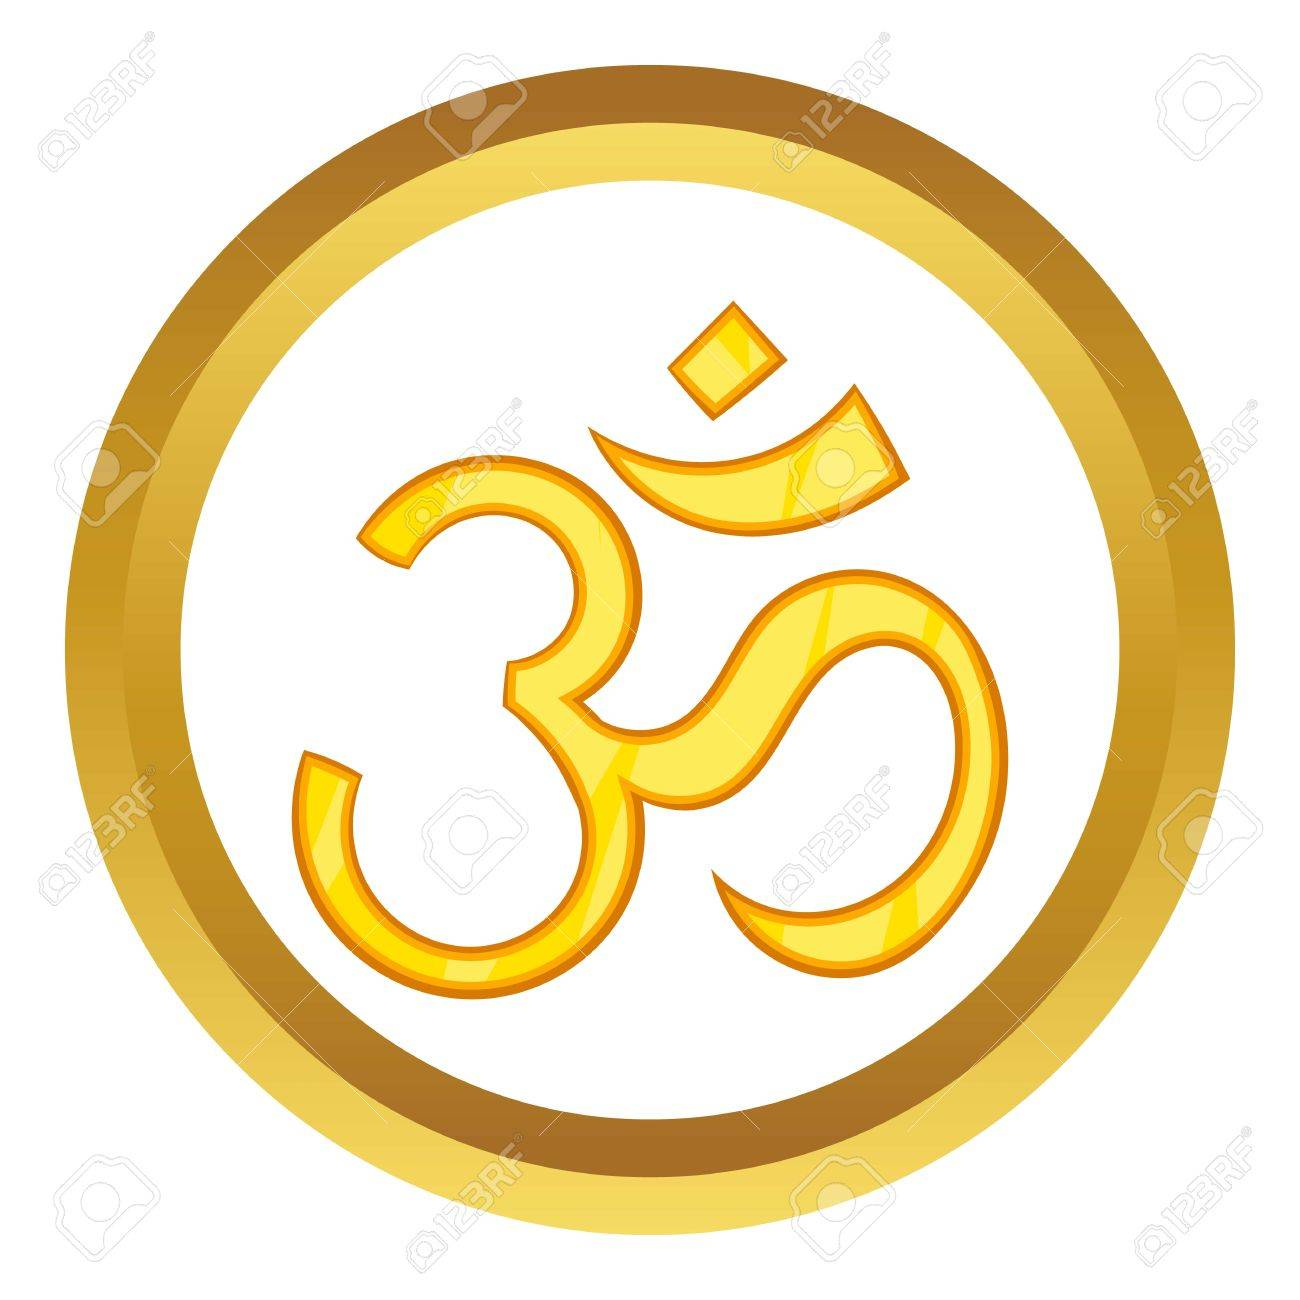 Hindu Om Symbol Vector Icon In Golden Circle Cartoon Style Isolated